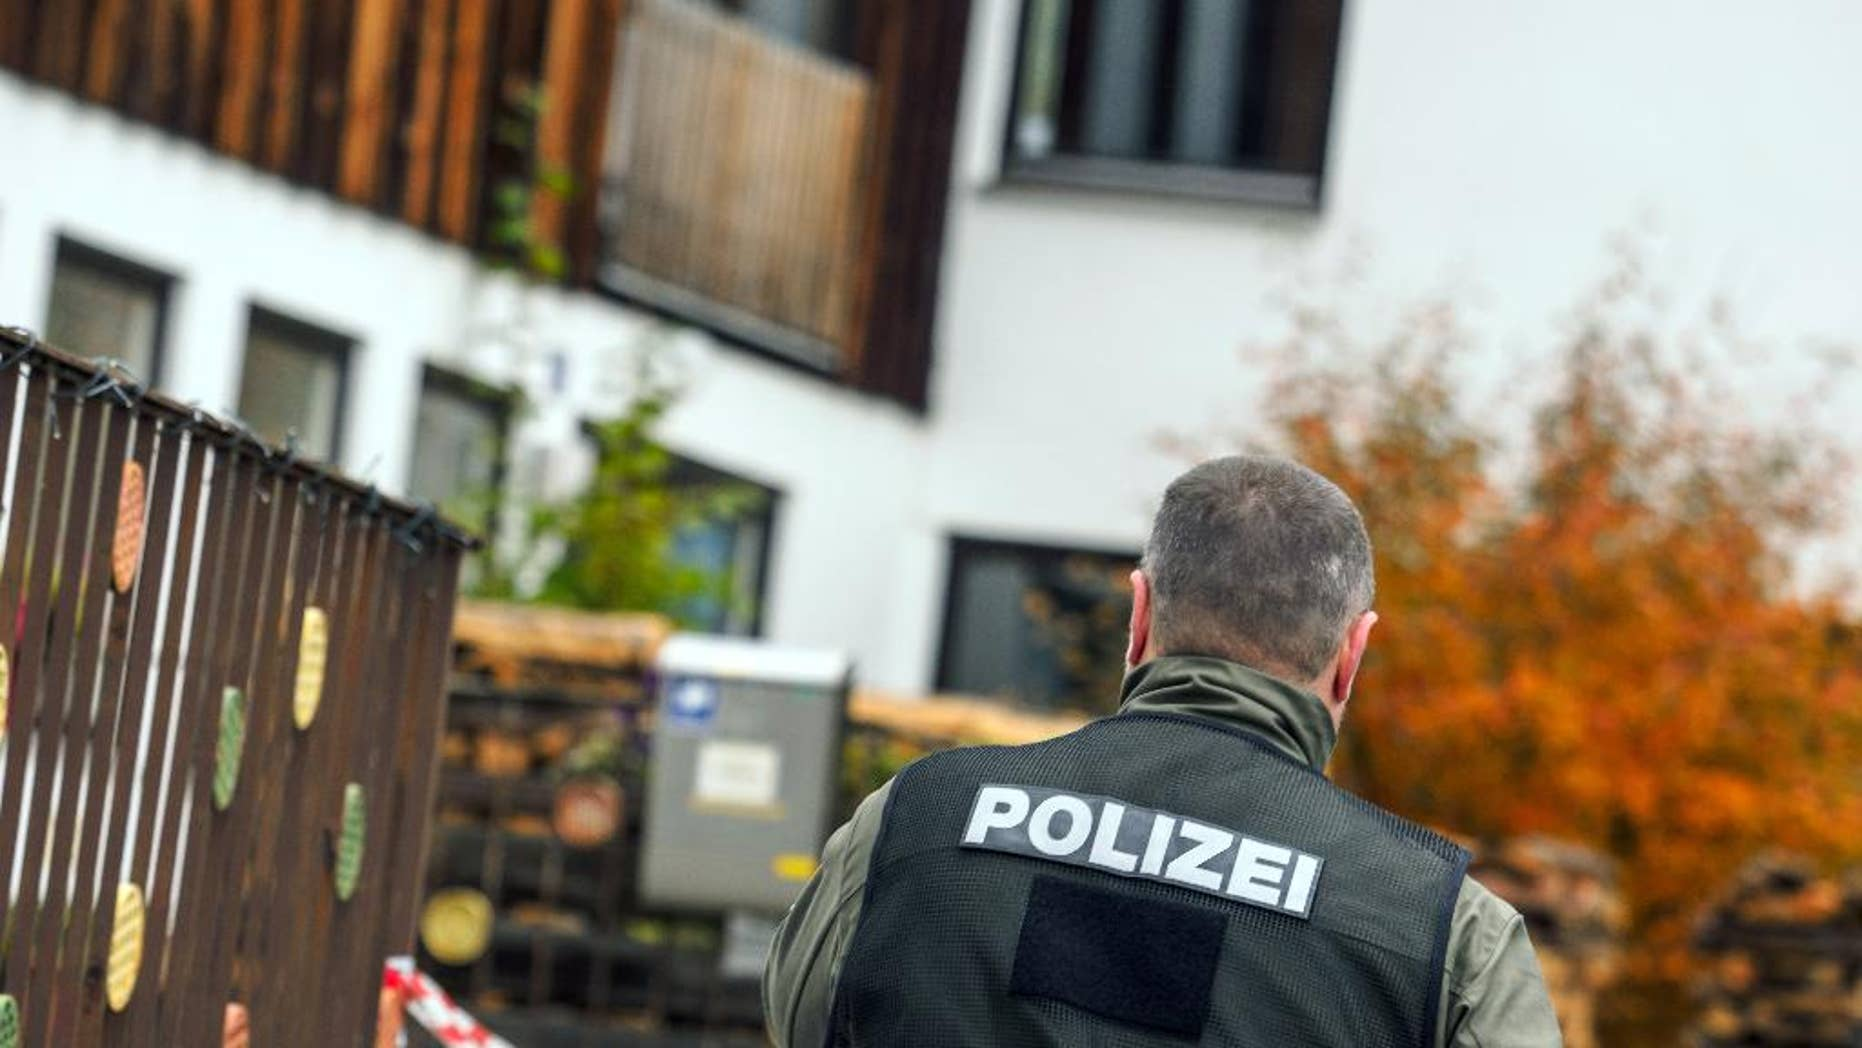 A policeman walks along the house in Georgensgmuend, Germany, Wednesday, Oct. 19, 2016, where an anti-government extremist opened fire on police in southern Germany during a raid in the morning in which they had planned to confiscate his weapons, and four officers were wounded, authorities said. The 49-year-old German man had legally possessed more than 30 weapons for hunting, but local authorities had revoked his license because he appeared increasingly unreliable, Bavarian Interior Minister Joachim Herrmann said. (Nicolas Armer/dpa via AP)